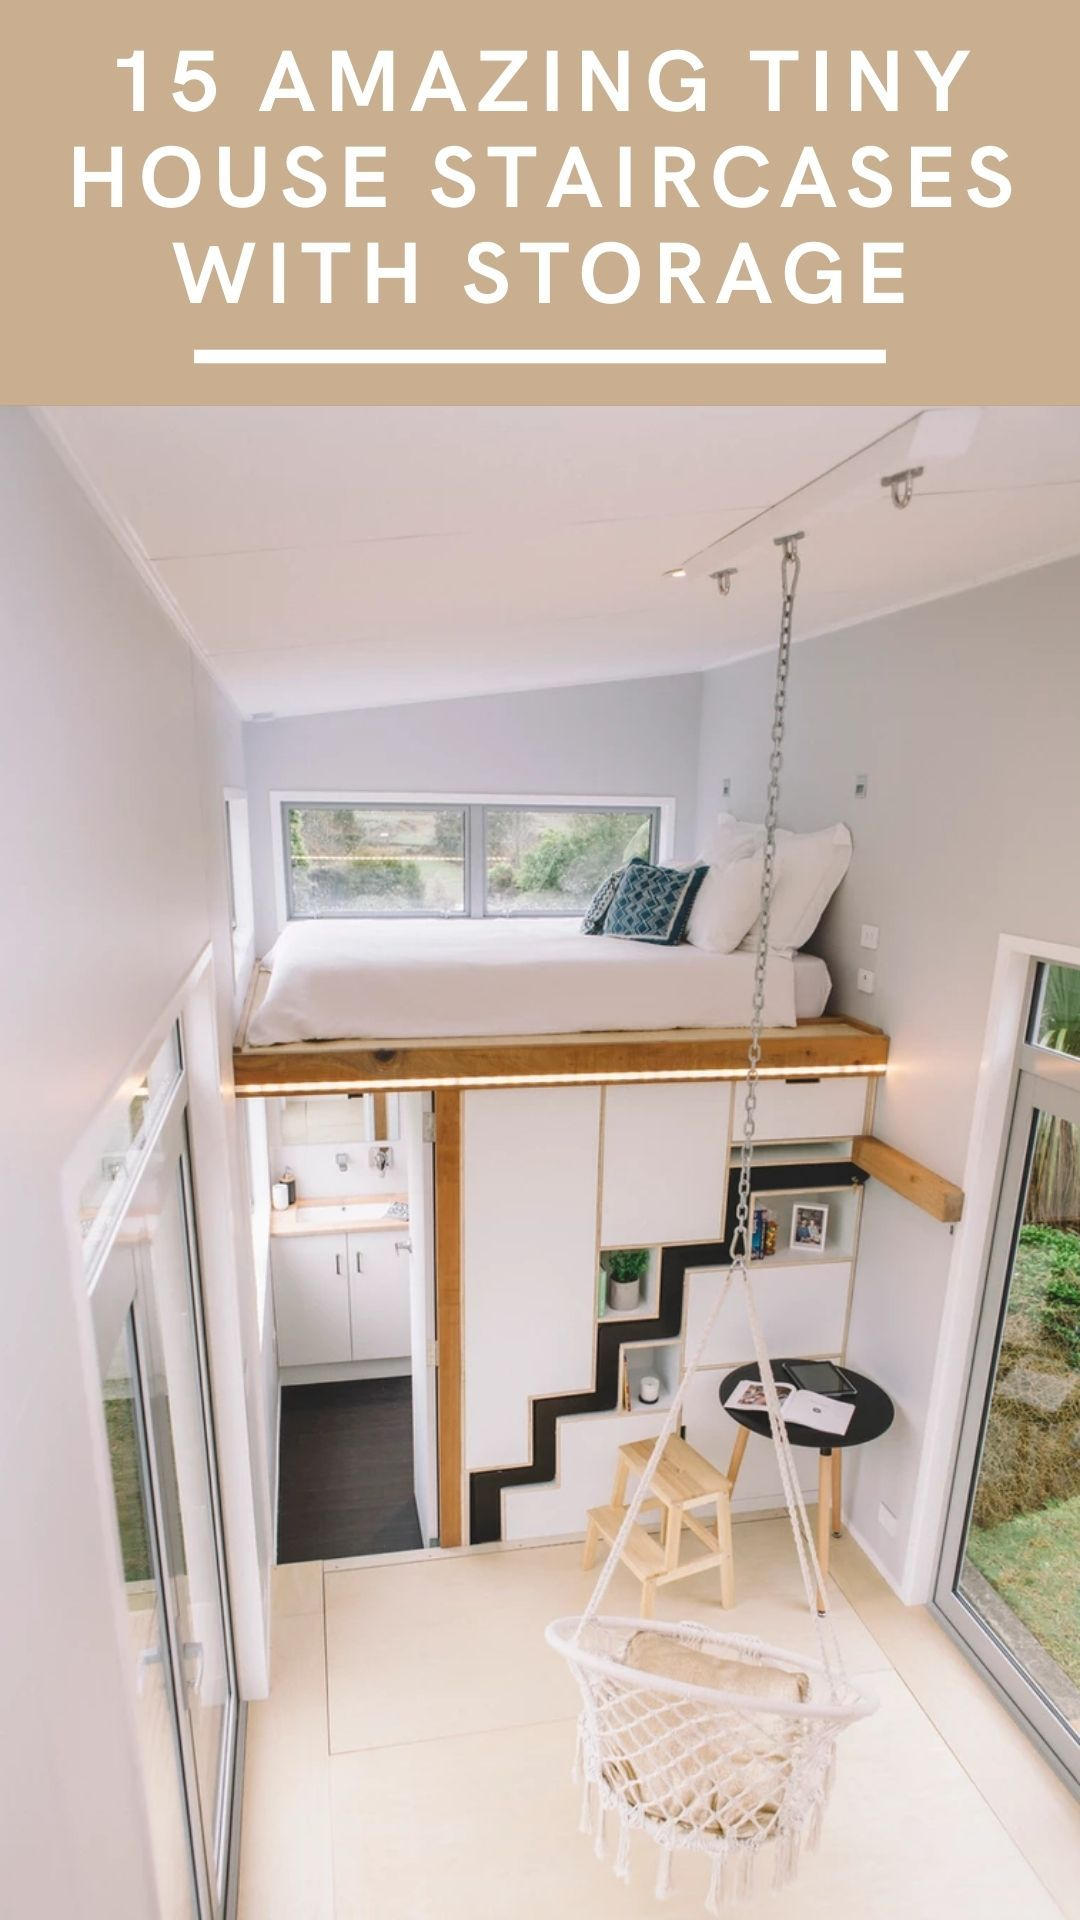 15 Creative Tiny House Staircases With Storage